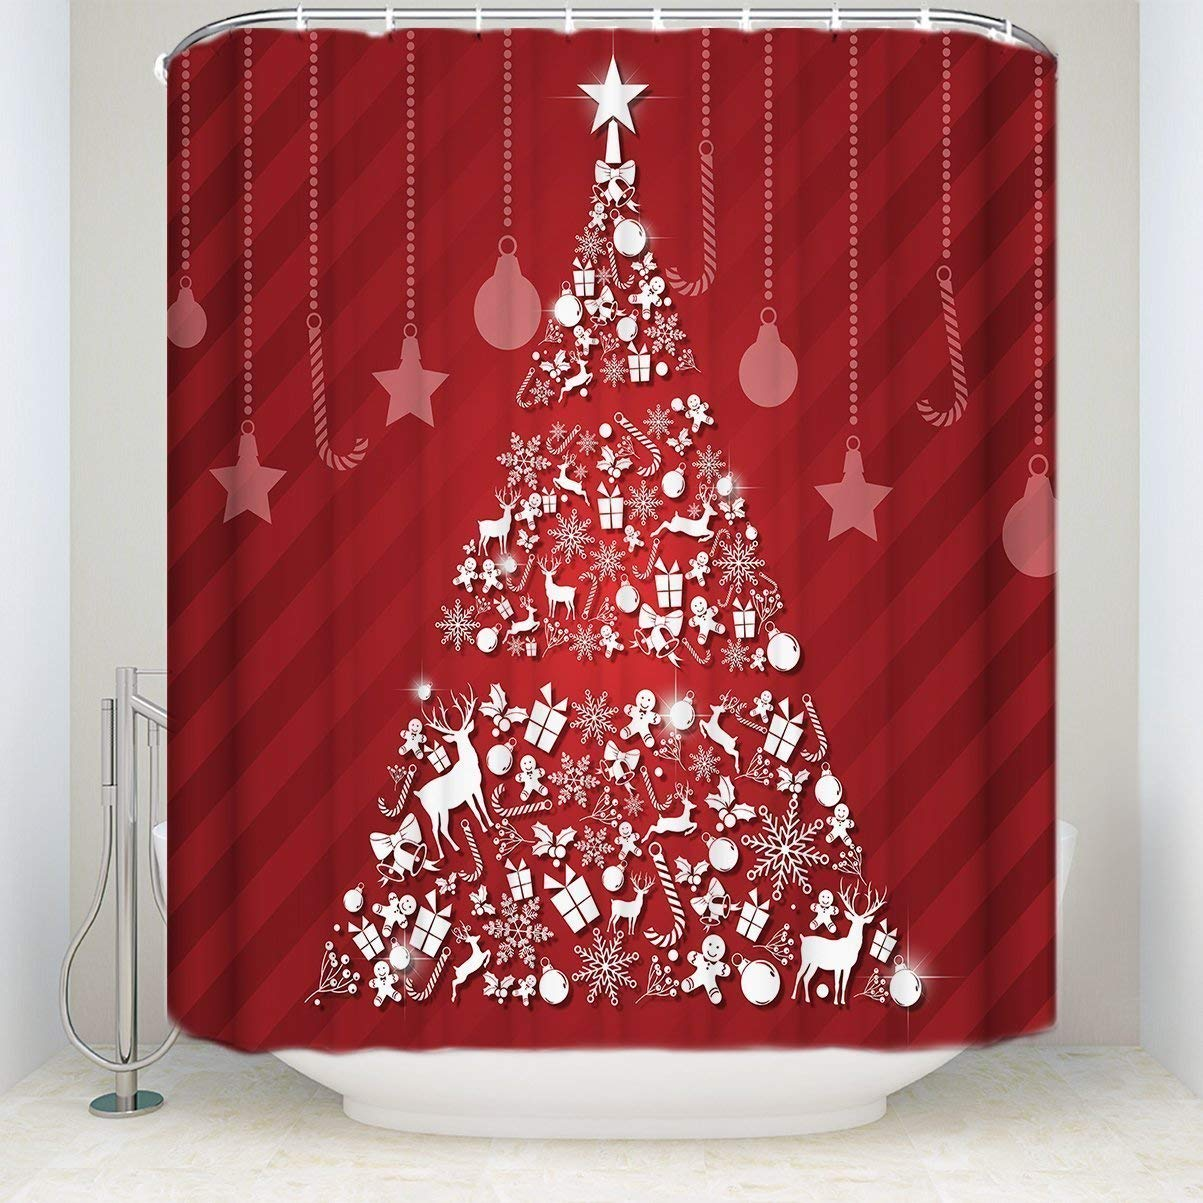 Get Quotations CHARMHOME Designs Christmas Theme Decor Merry Shining Santa Tree Red Background Shower Curtain